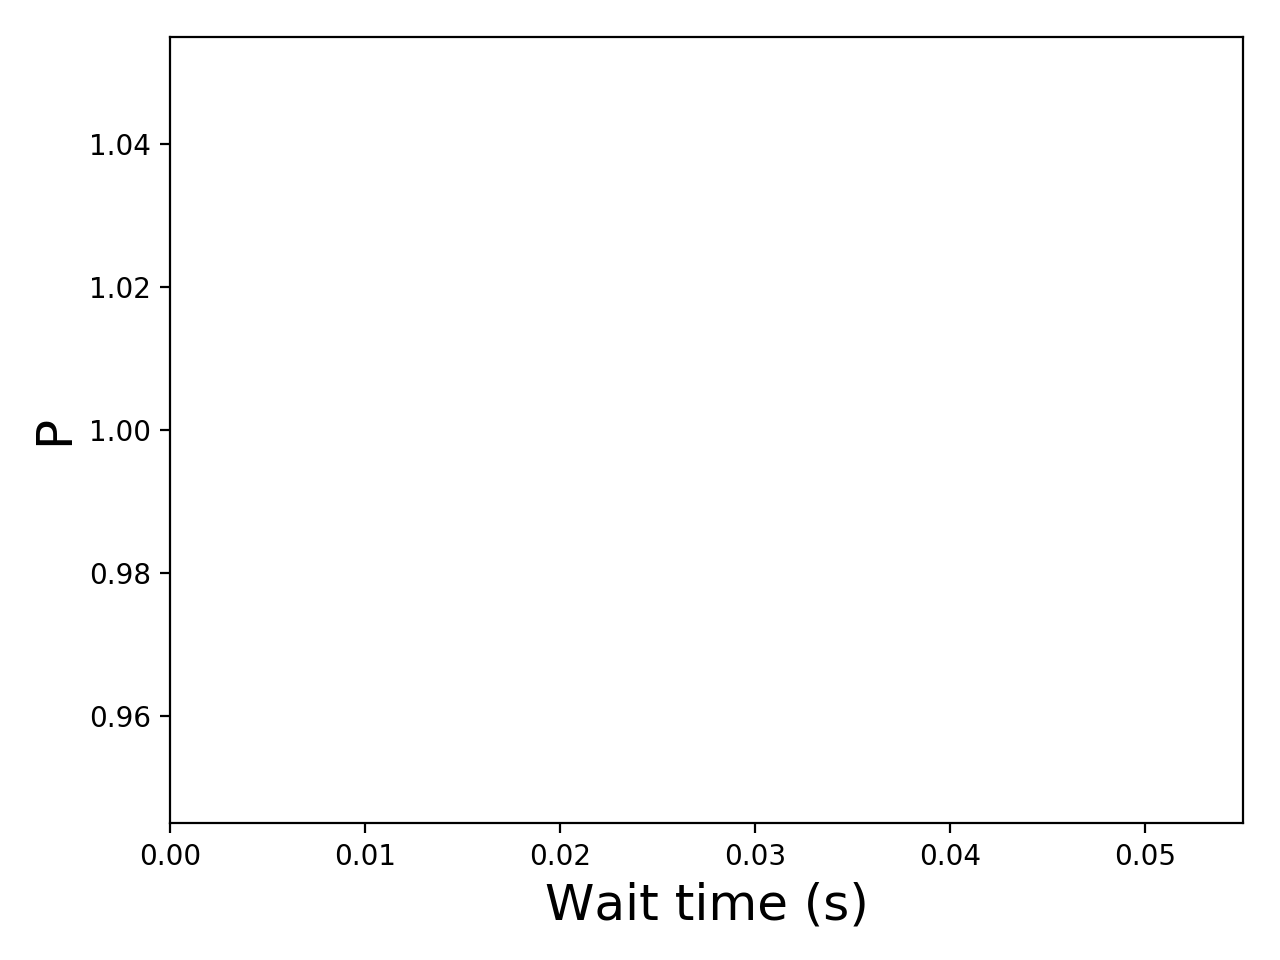 Task wait time CDF graph for the askalon-new_ee60 trace.